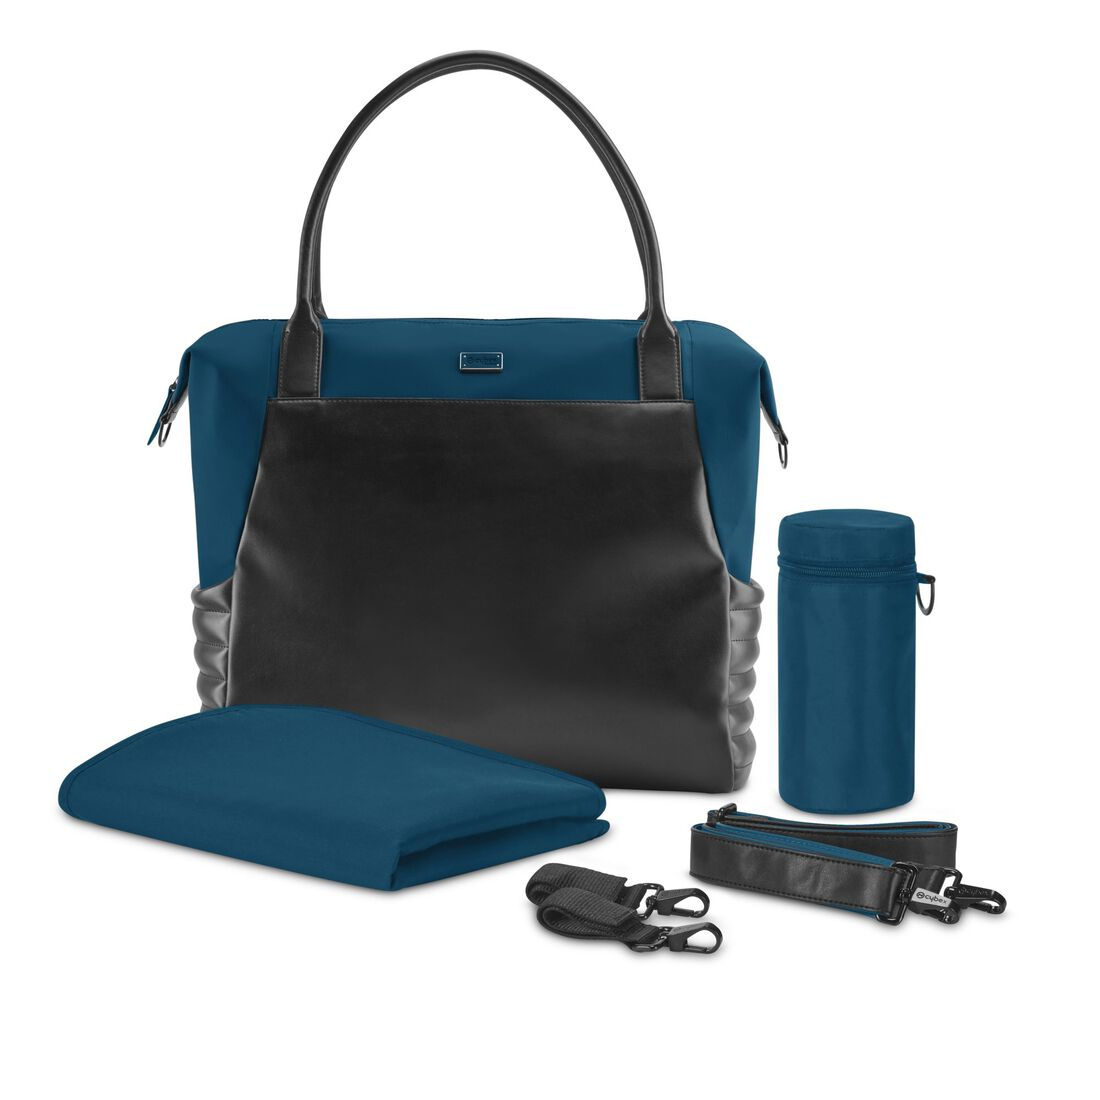 CYBEX Priam Changing Bag - Mountain Blue in Mountain Blue large image number 2